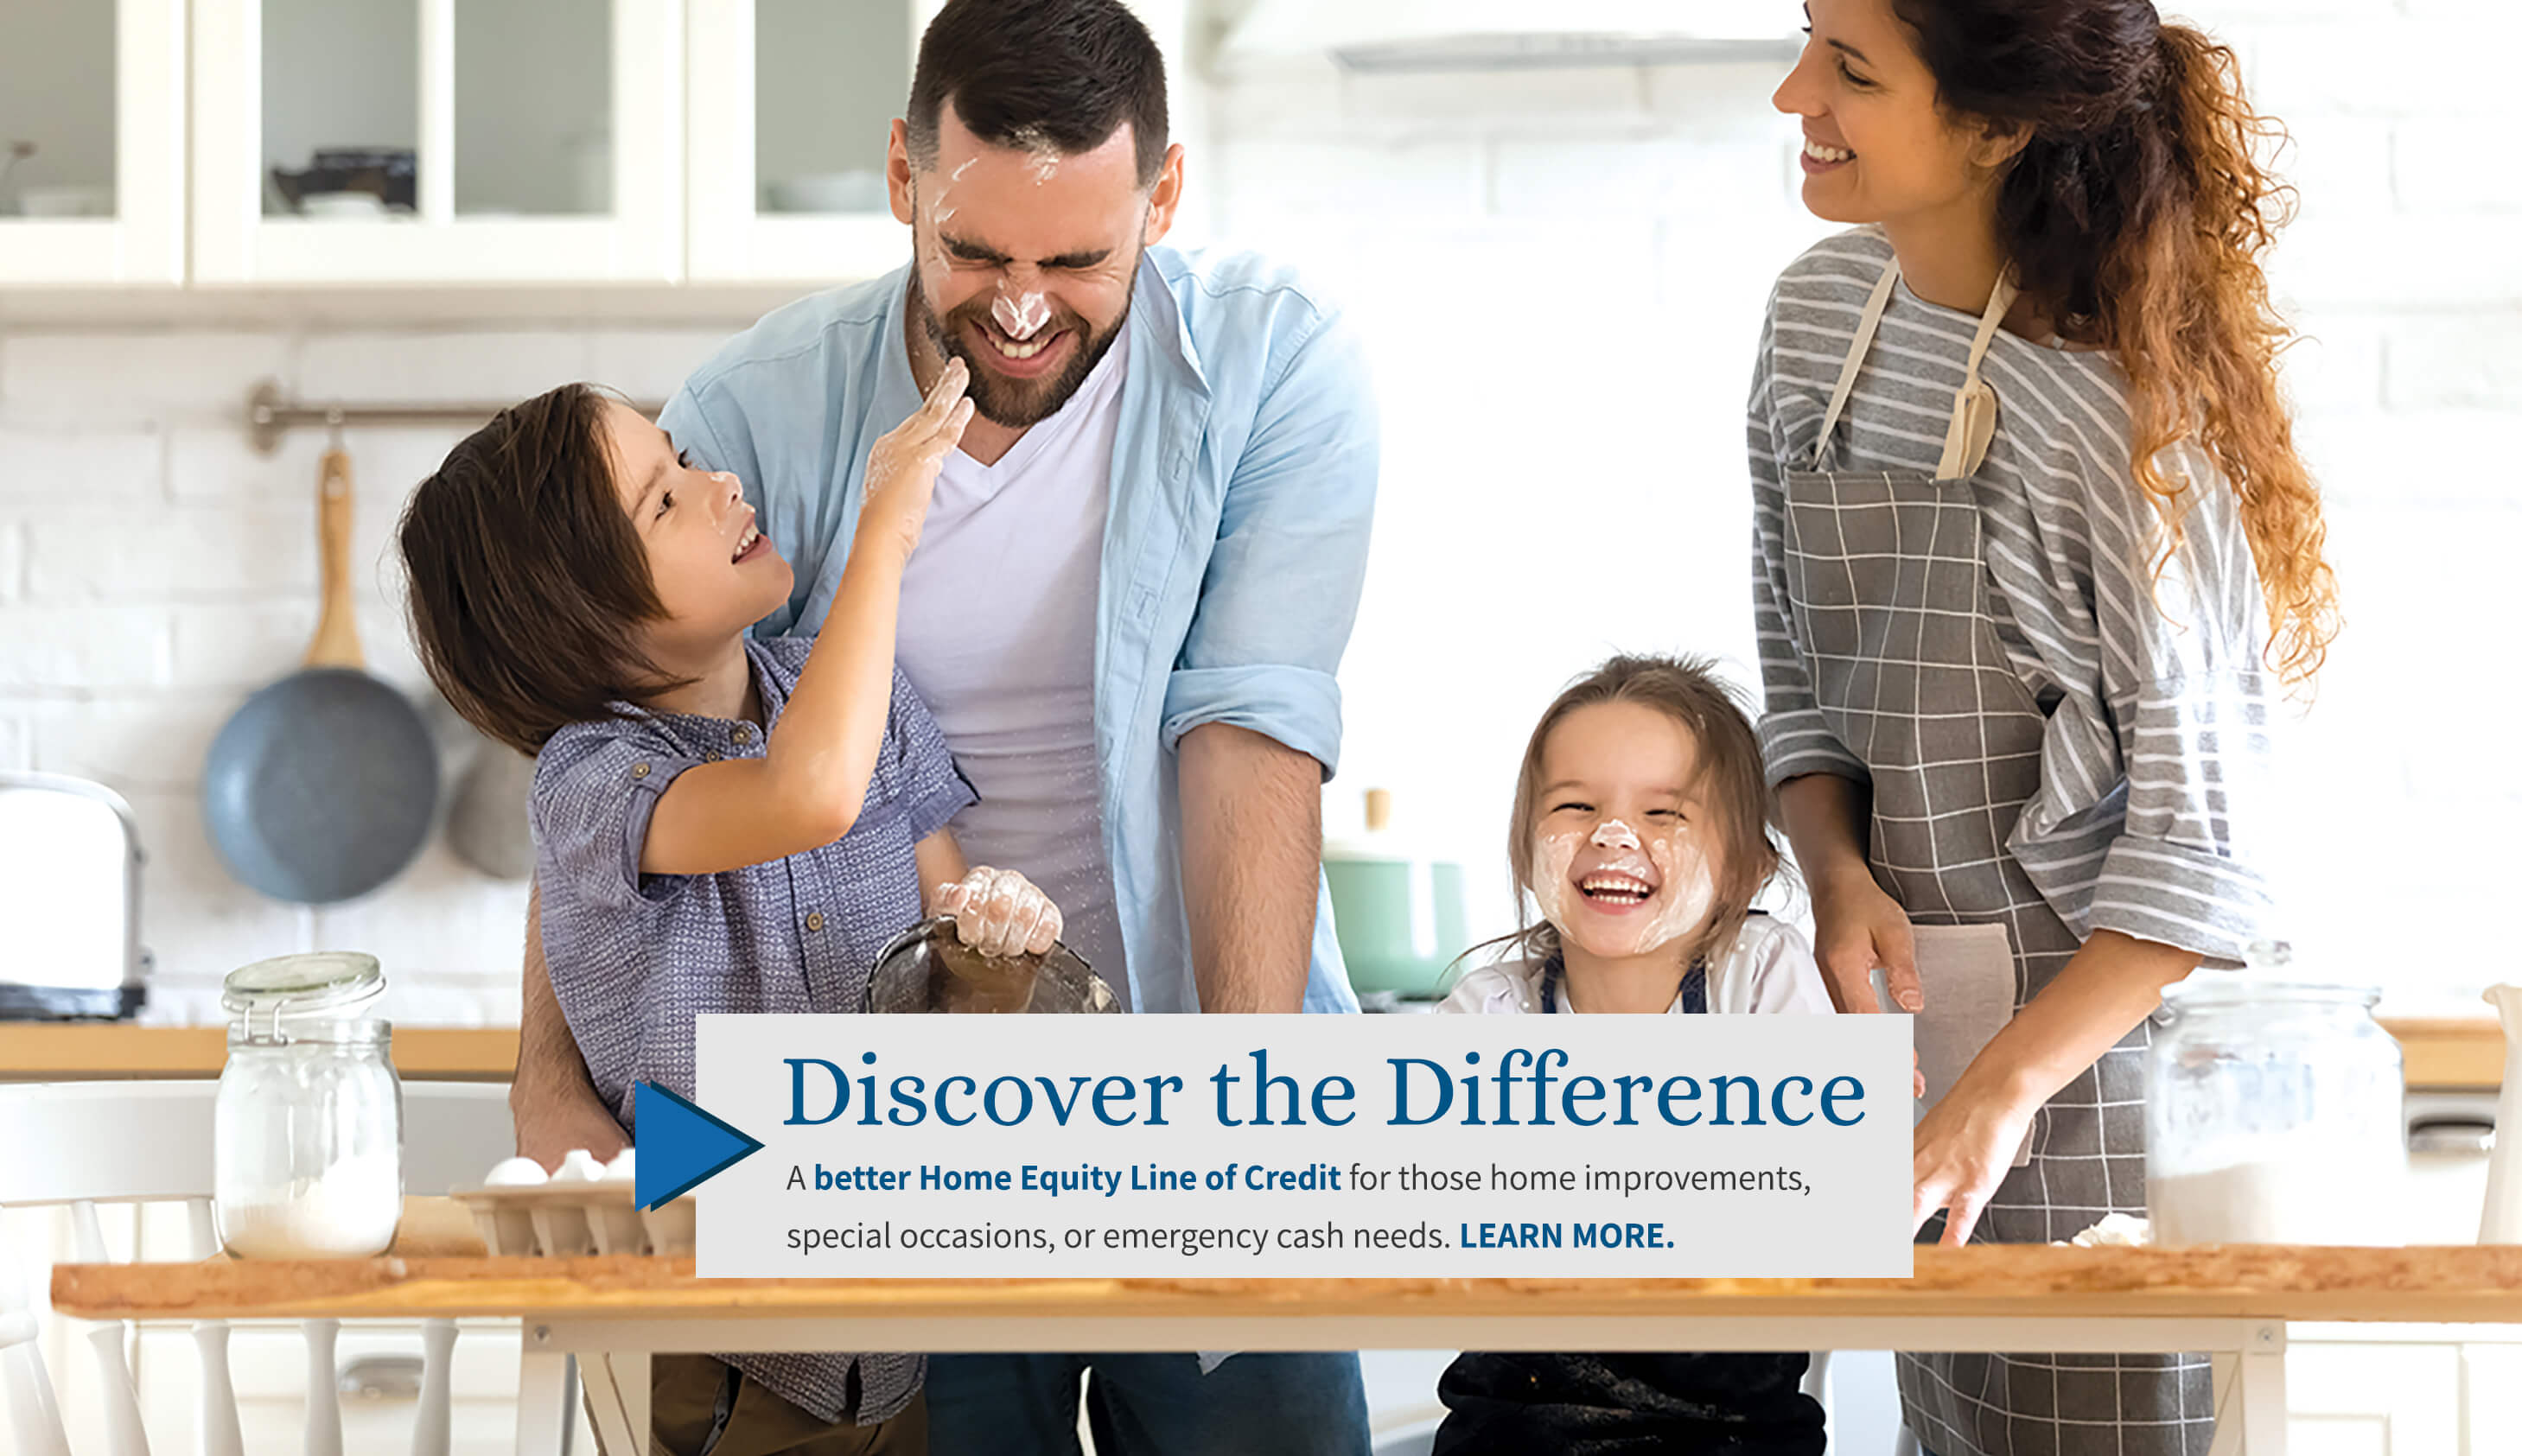 Discover the Difference. A better Home Equity Line-of-Credit for those home improvements, special occasions, or emergency cash needs. Learn More.